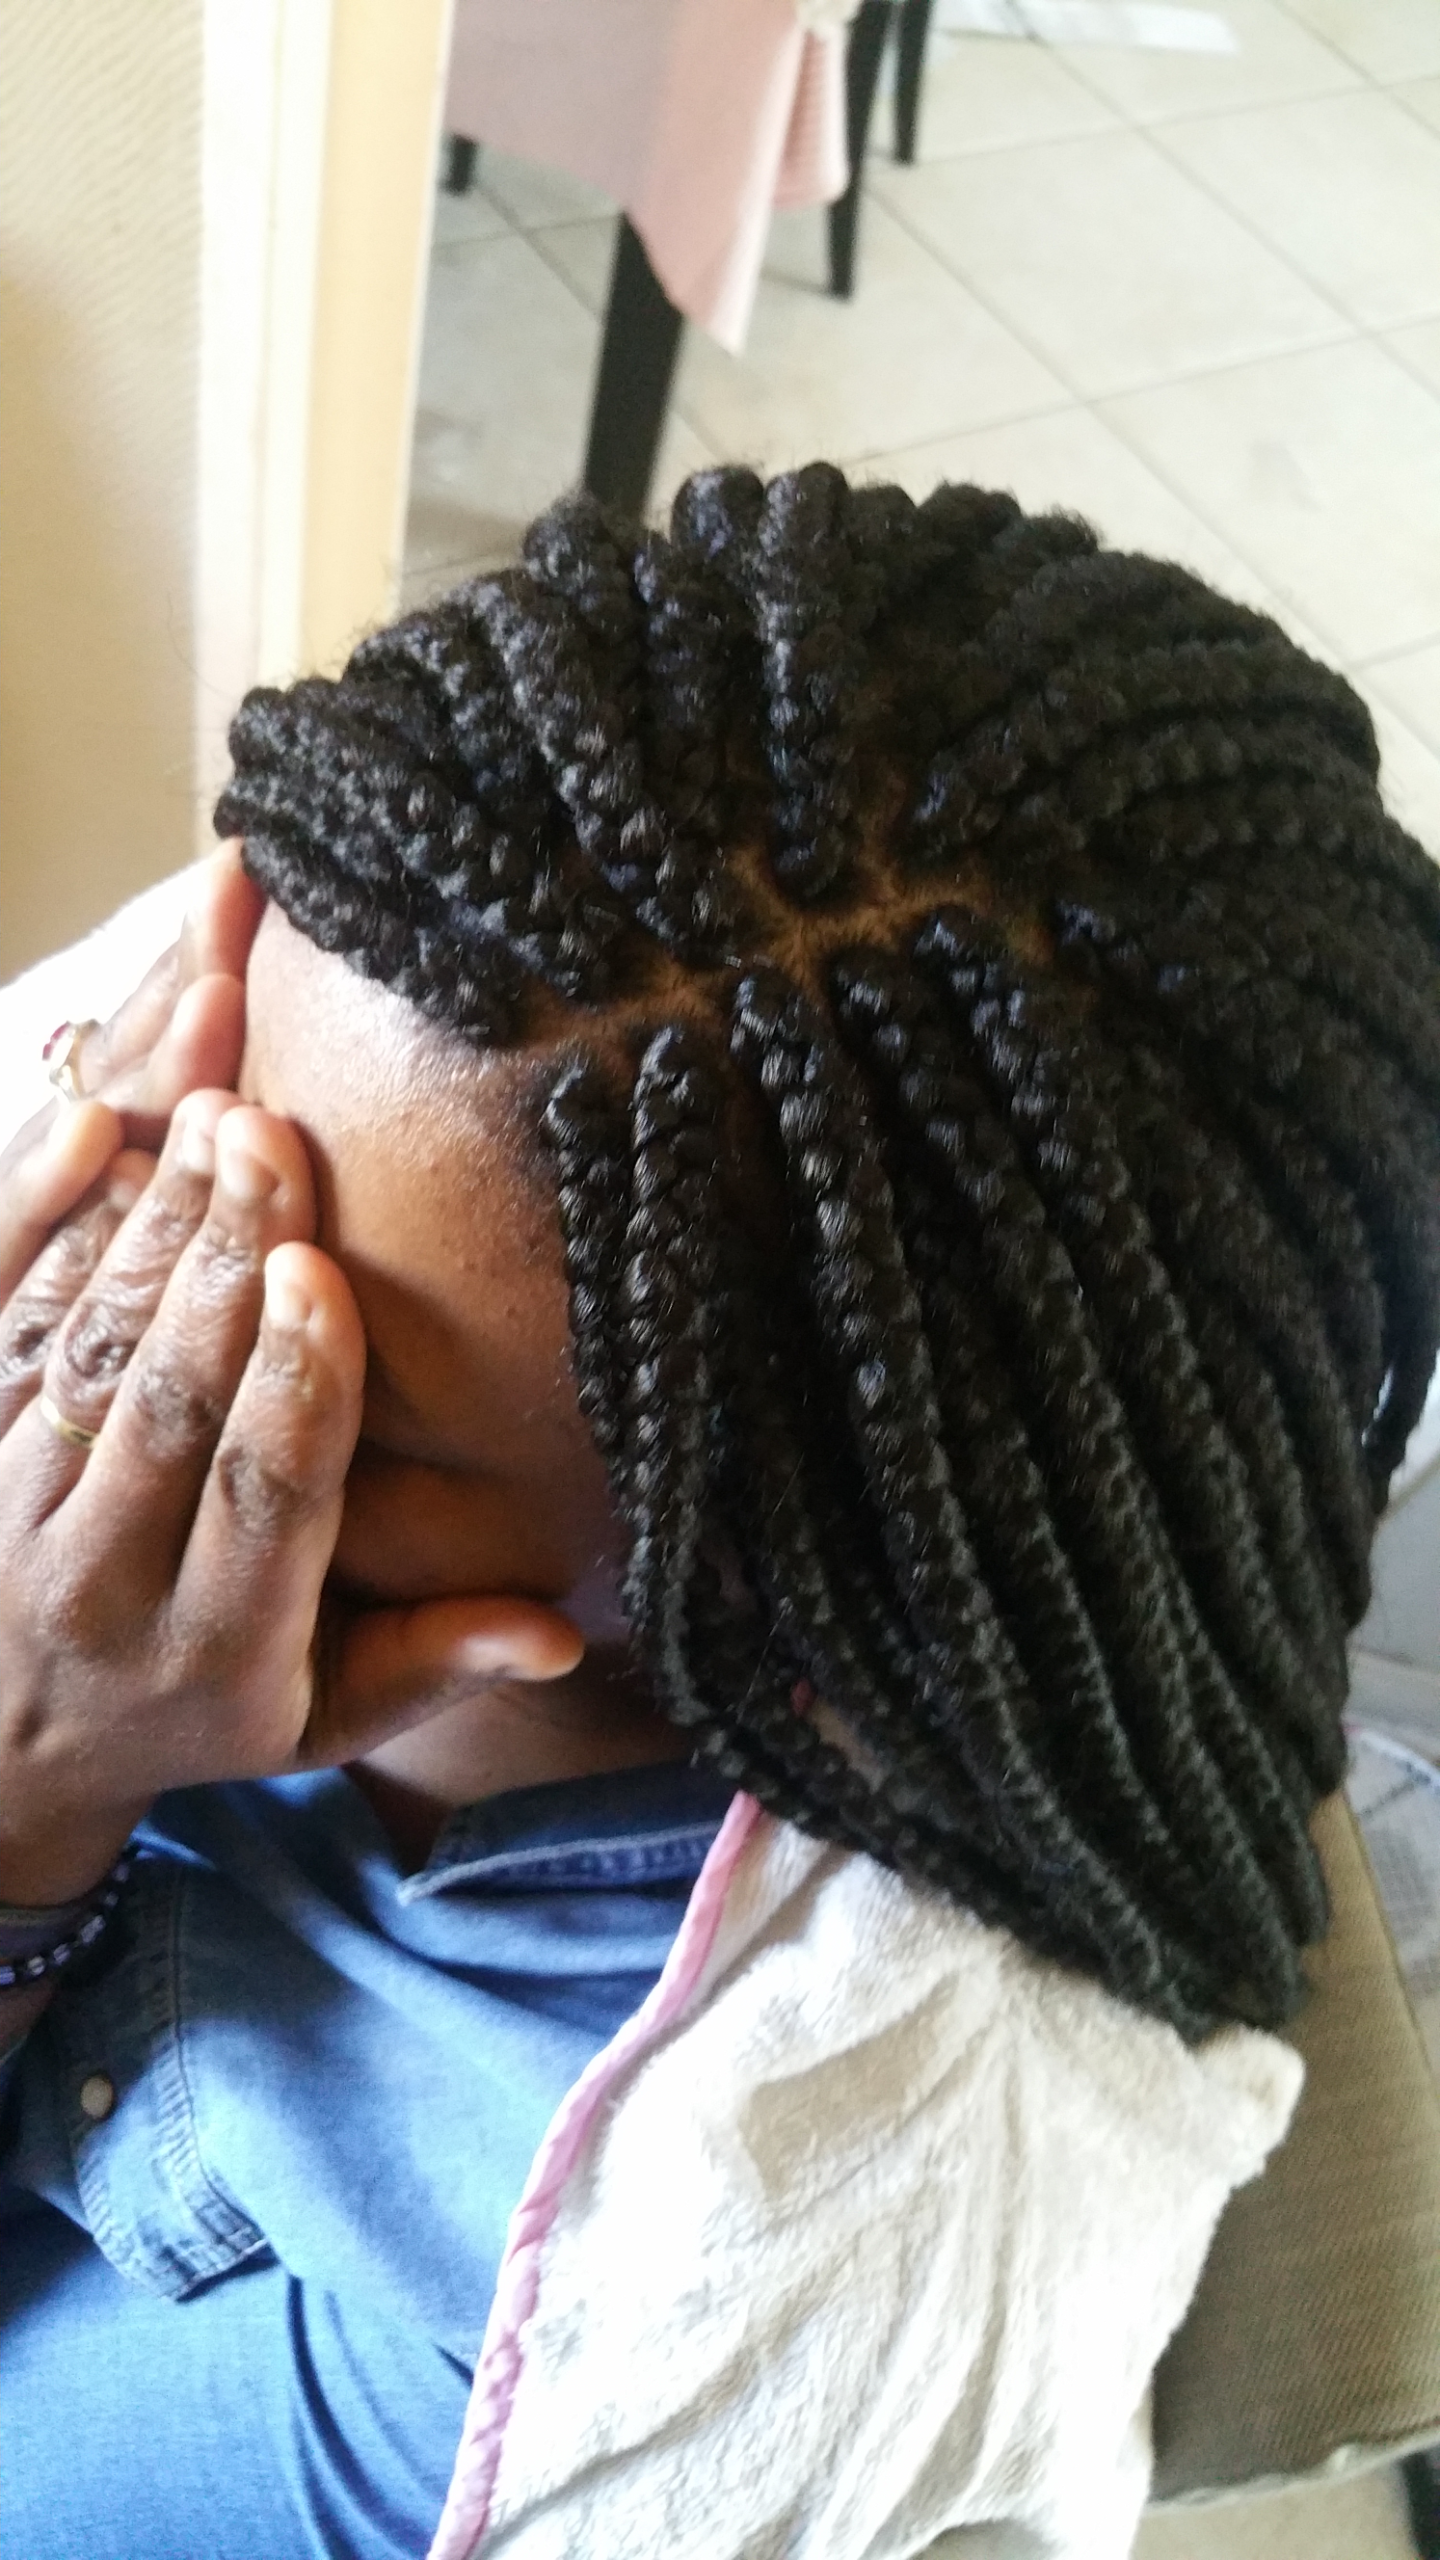 salon de coiffure afro tresse tresses box braids crochet braids vanilles tissages paris 75 77 78 91 92 93 94 95 GKBKJYLZ